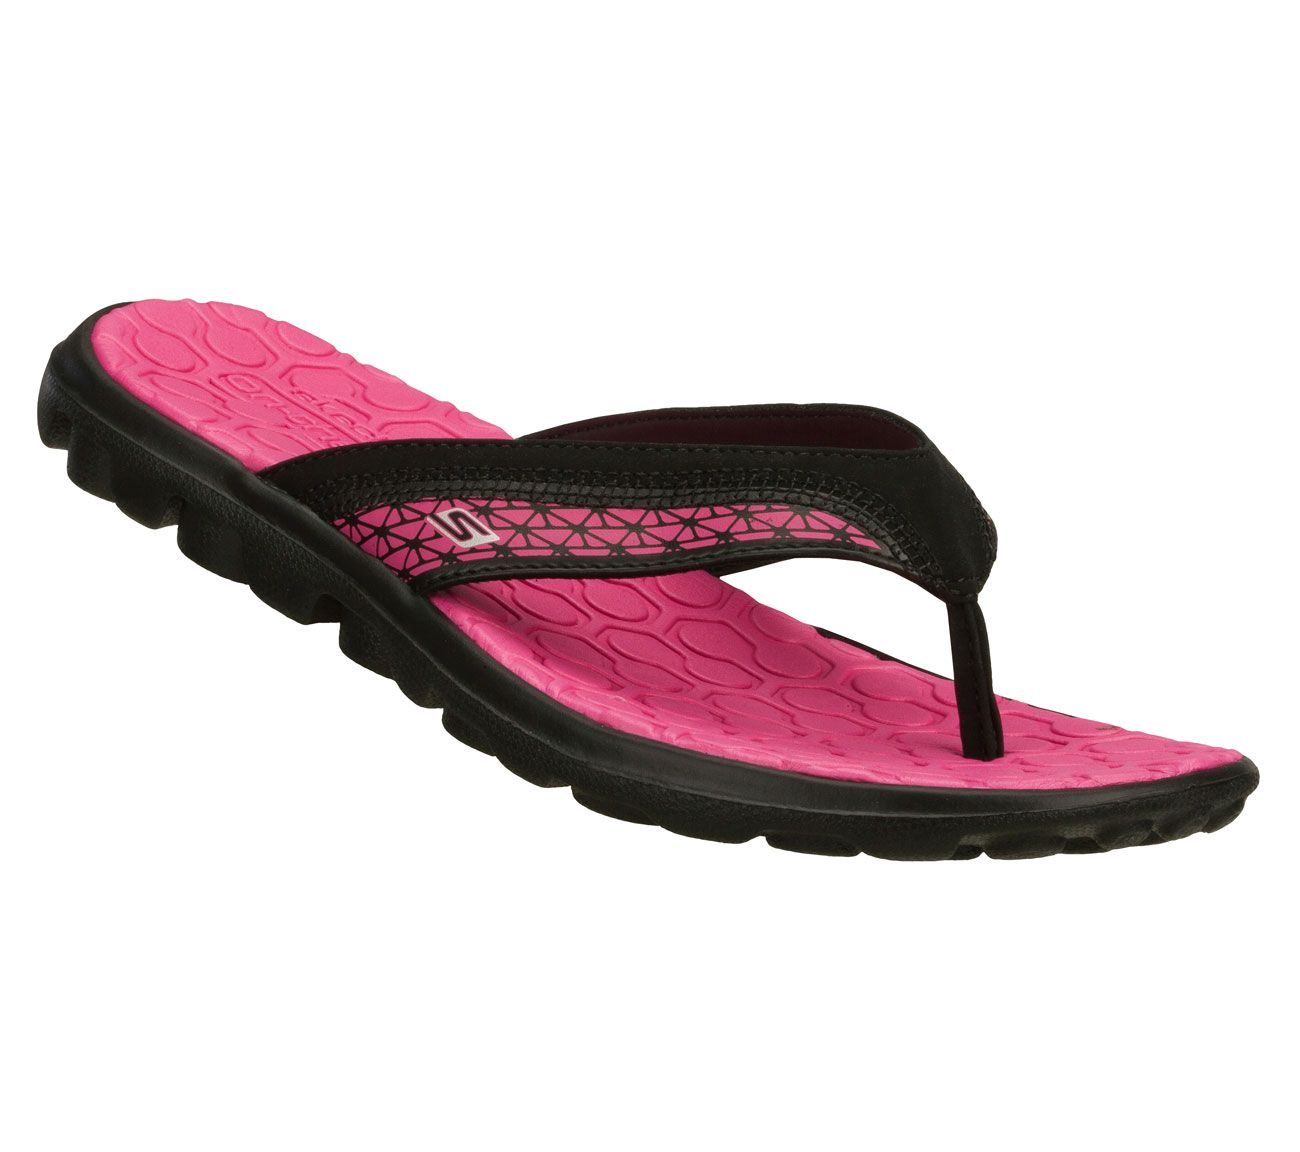 Womens Skechers On The Go Escape Favorite Sandal Skecherspintowin Skechers On The Go Skechers Mens Shoes Skechers Shoes